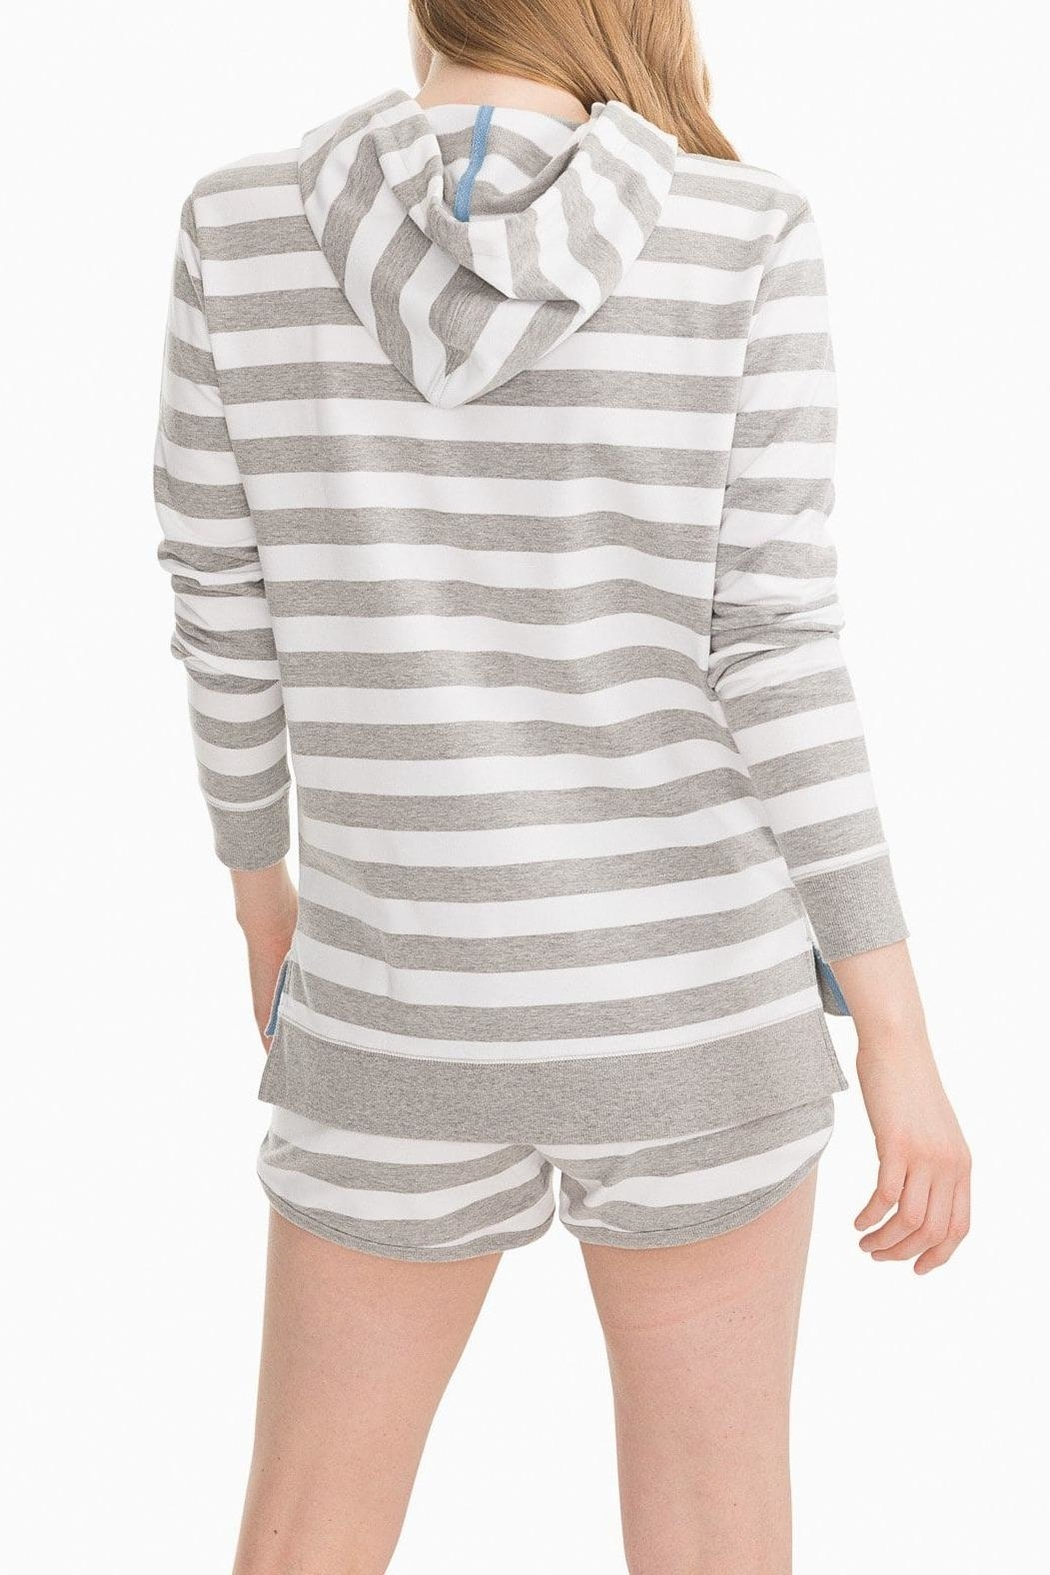 Southern Tide Soleil Striped Hoodie - Side Cropped Image